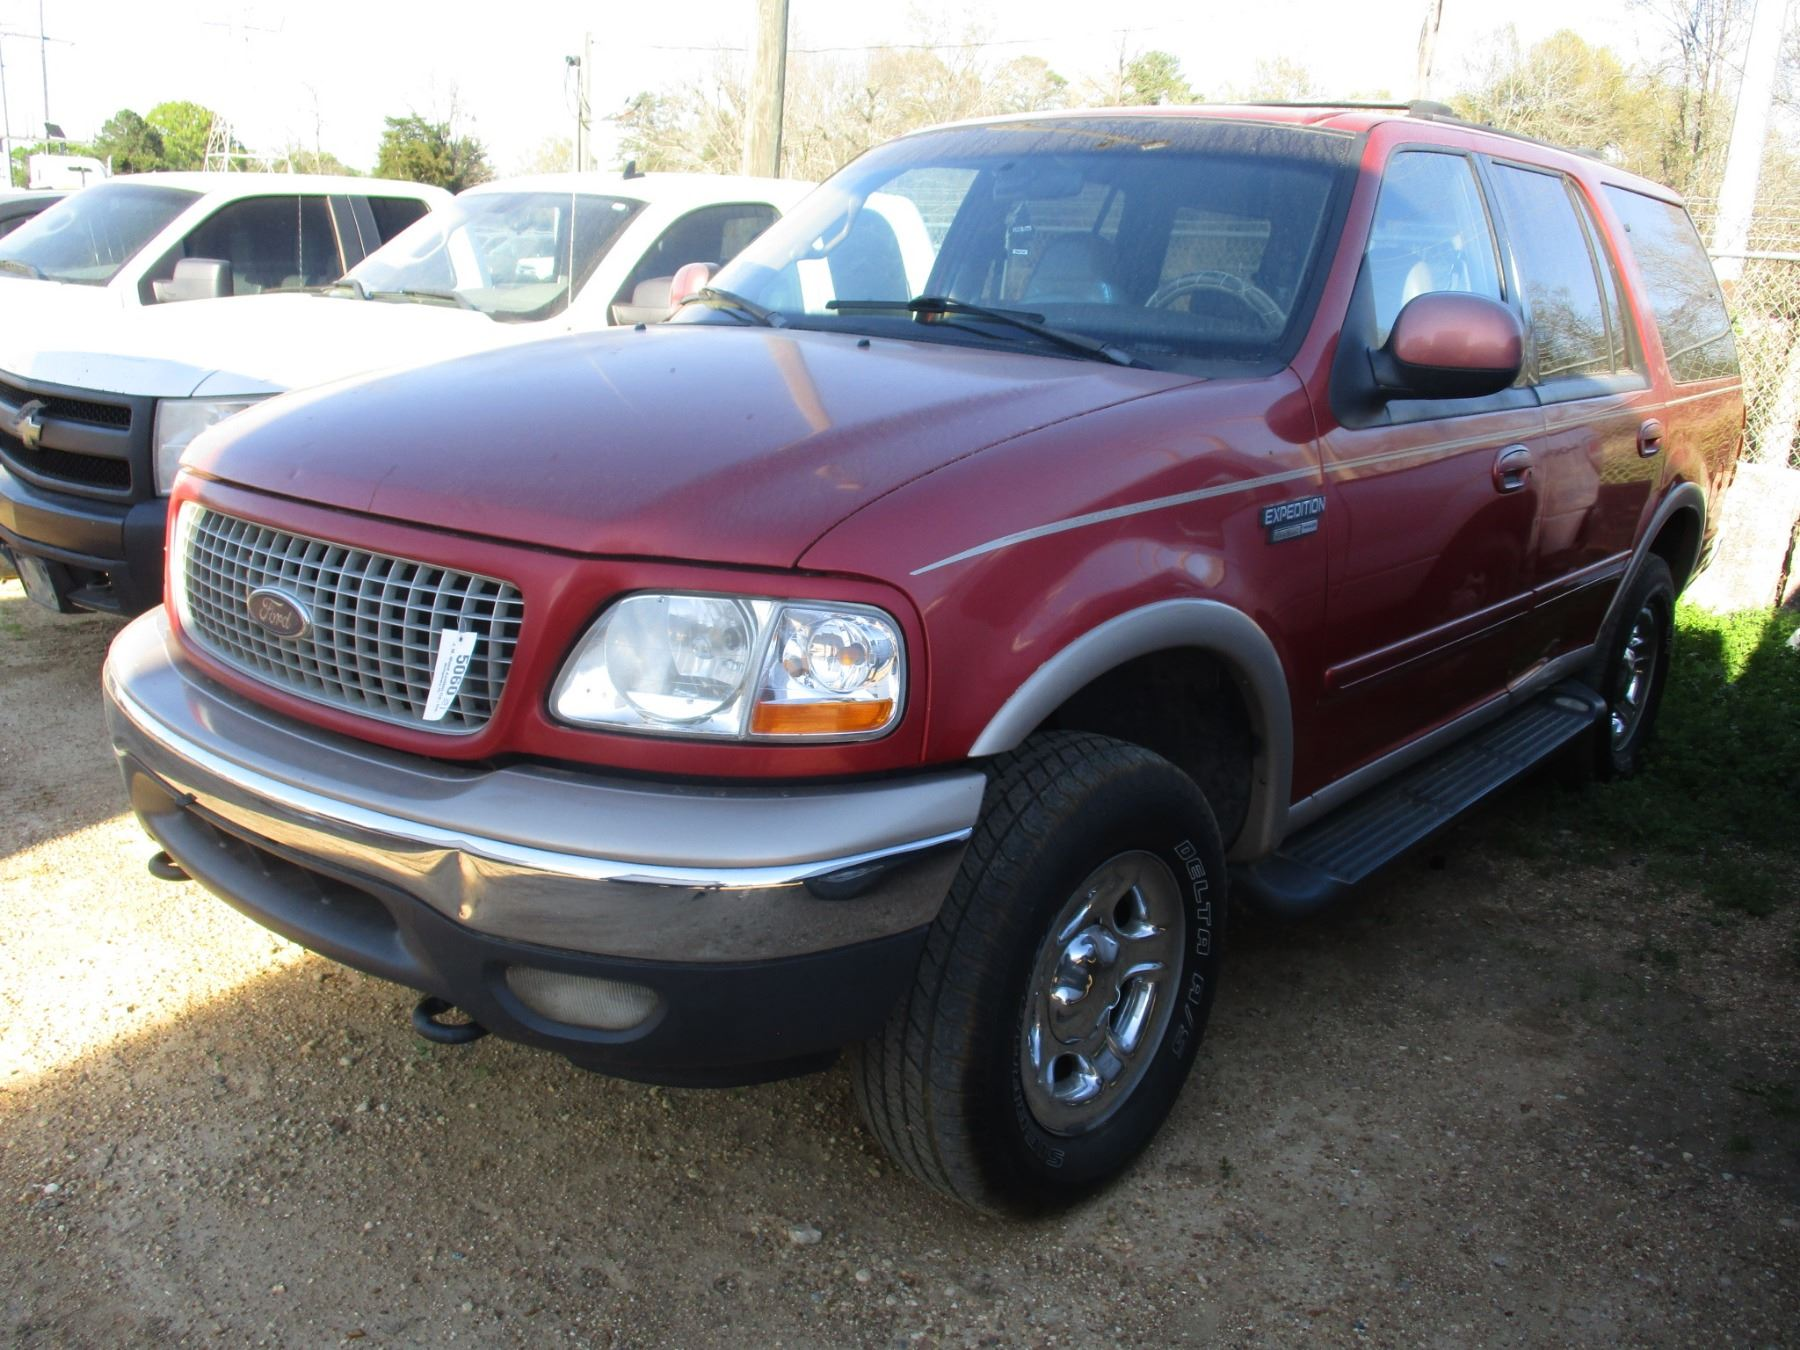 1999 expedition engine